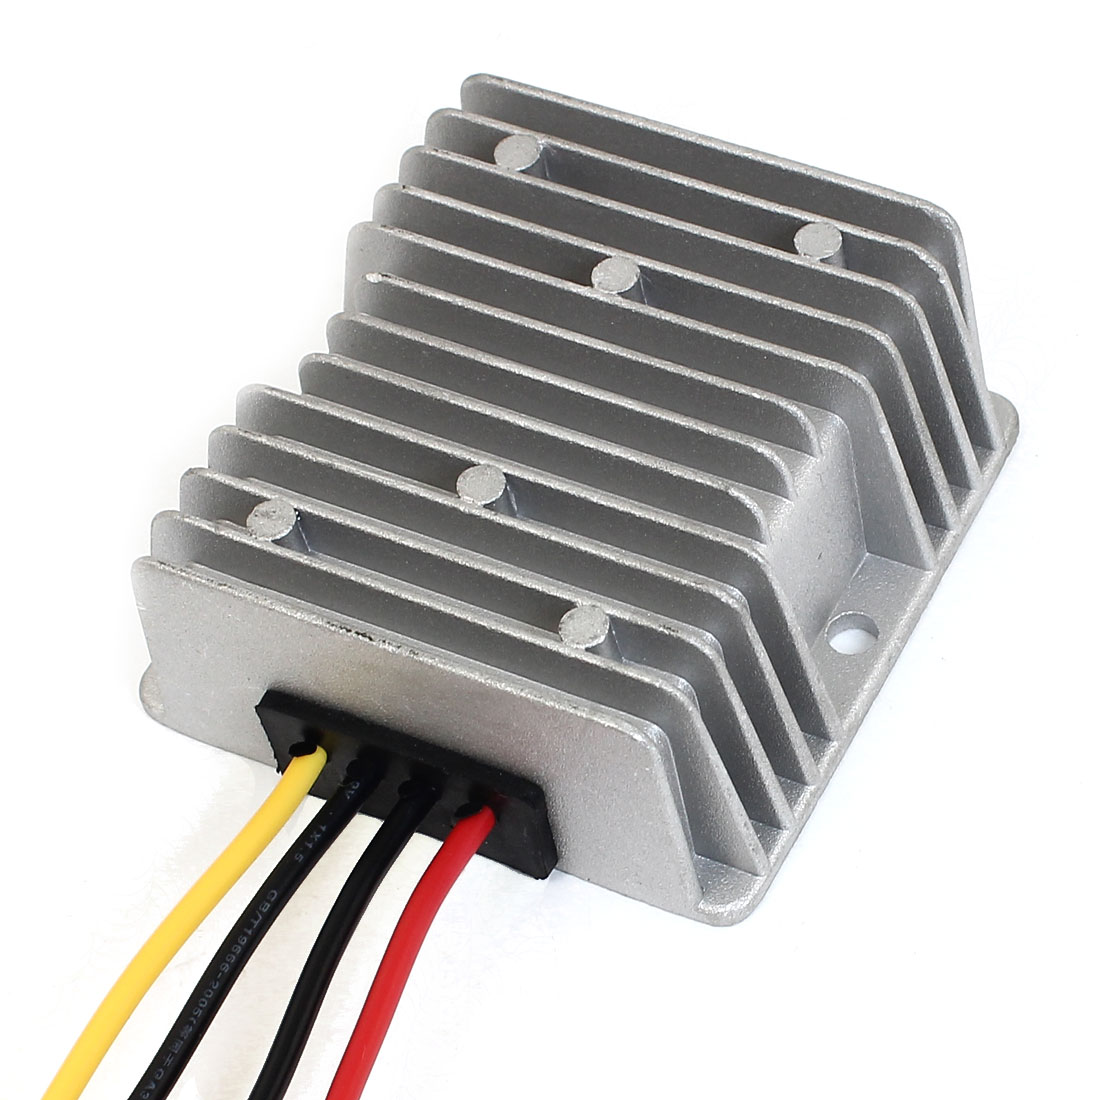 DC 12V(9V~24V) to DC 24V 3A 72W Power Converter Regulator Waterproof Electronic Transformer